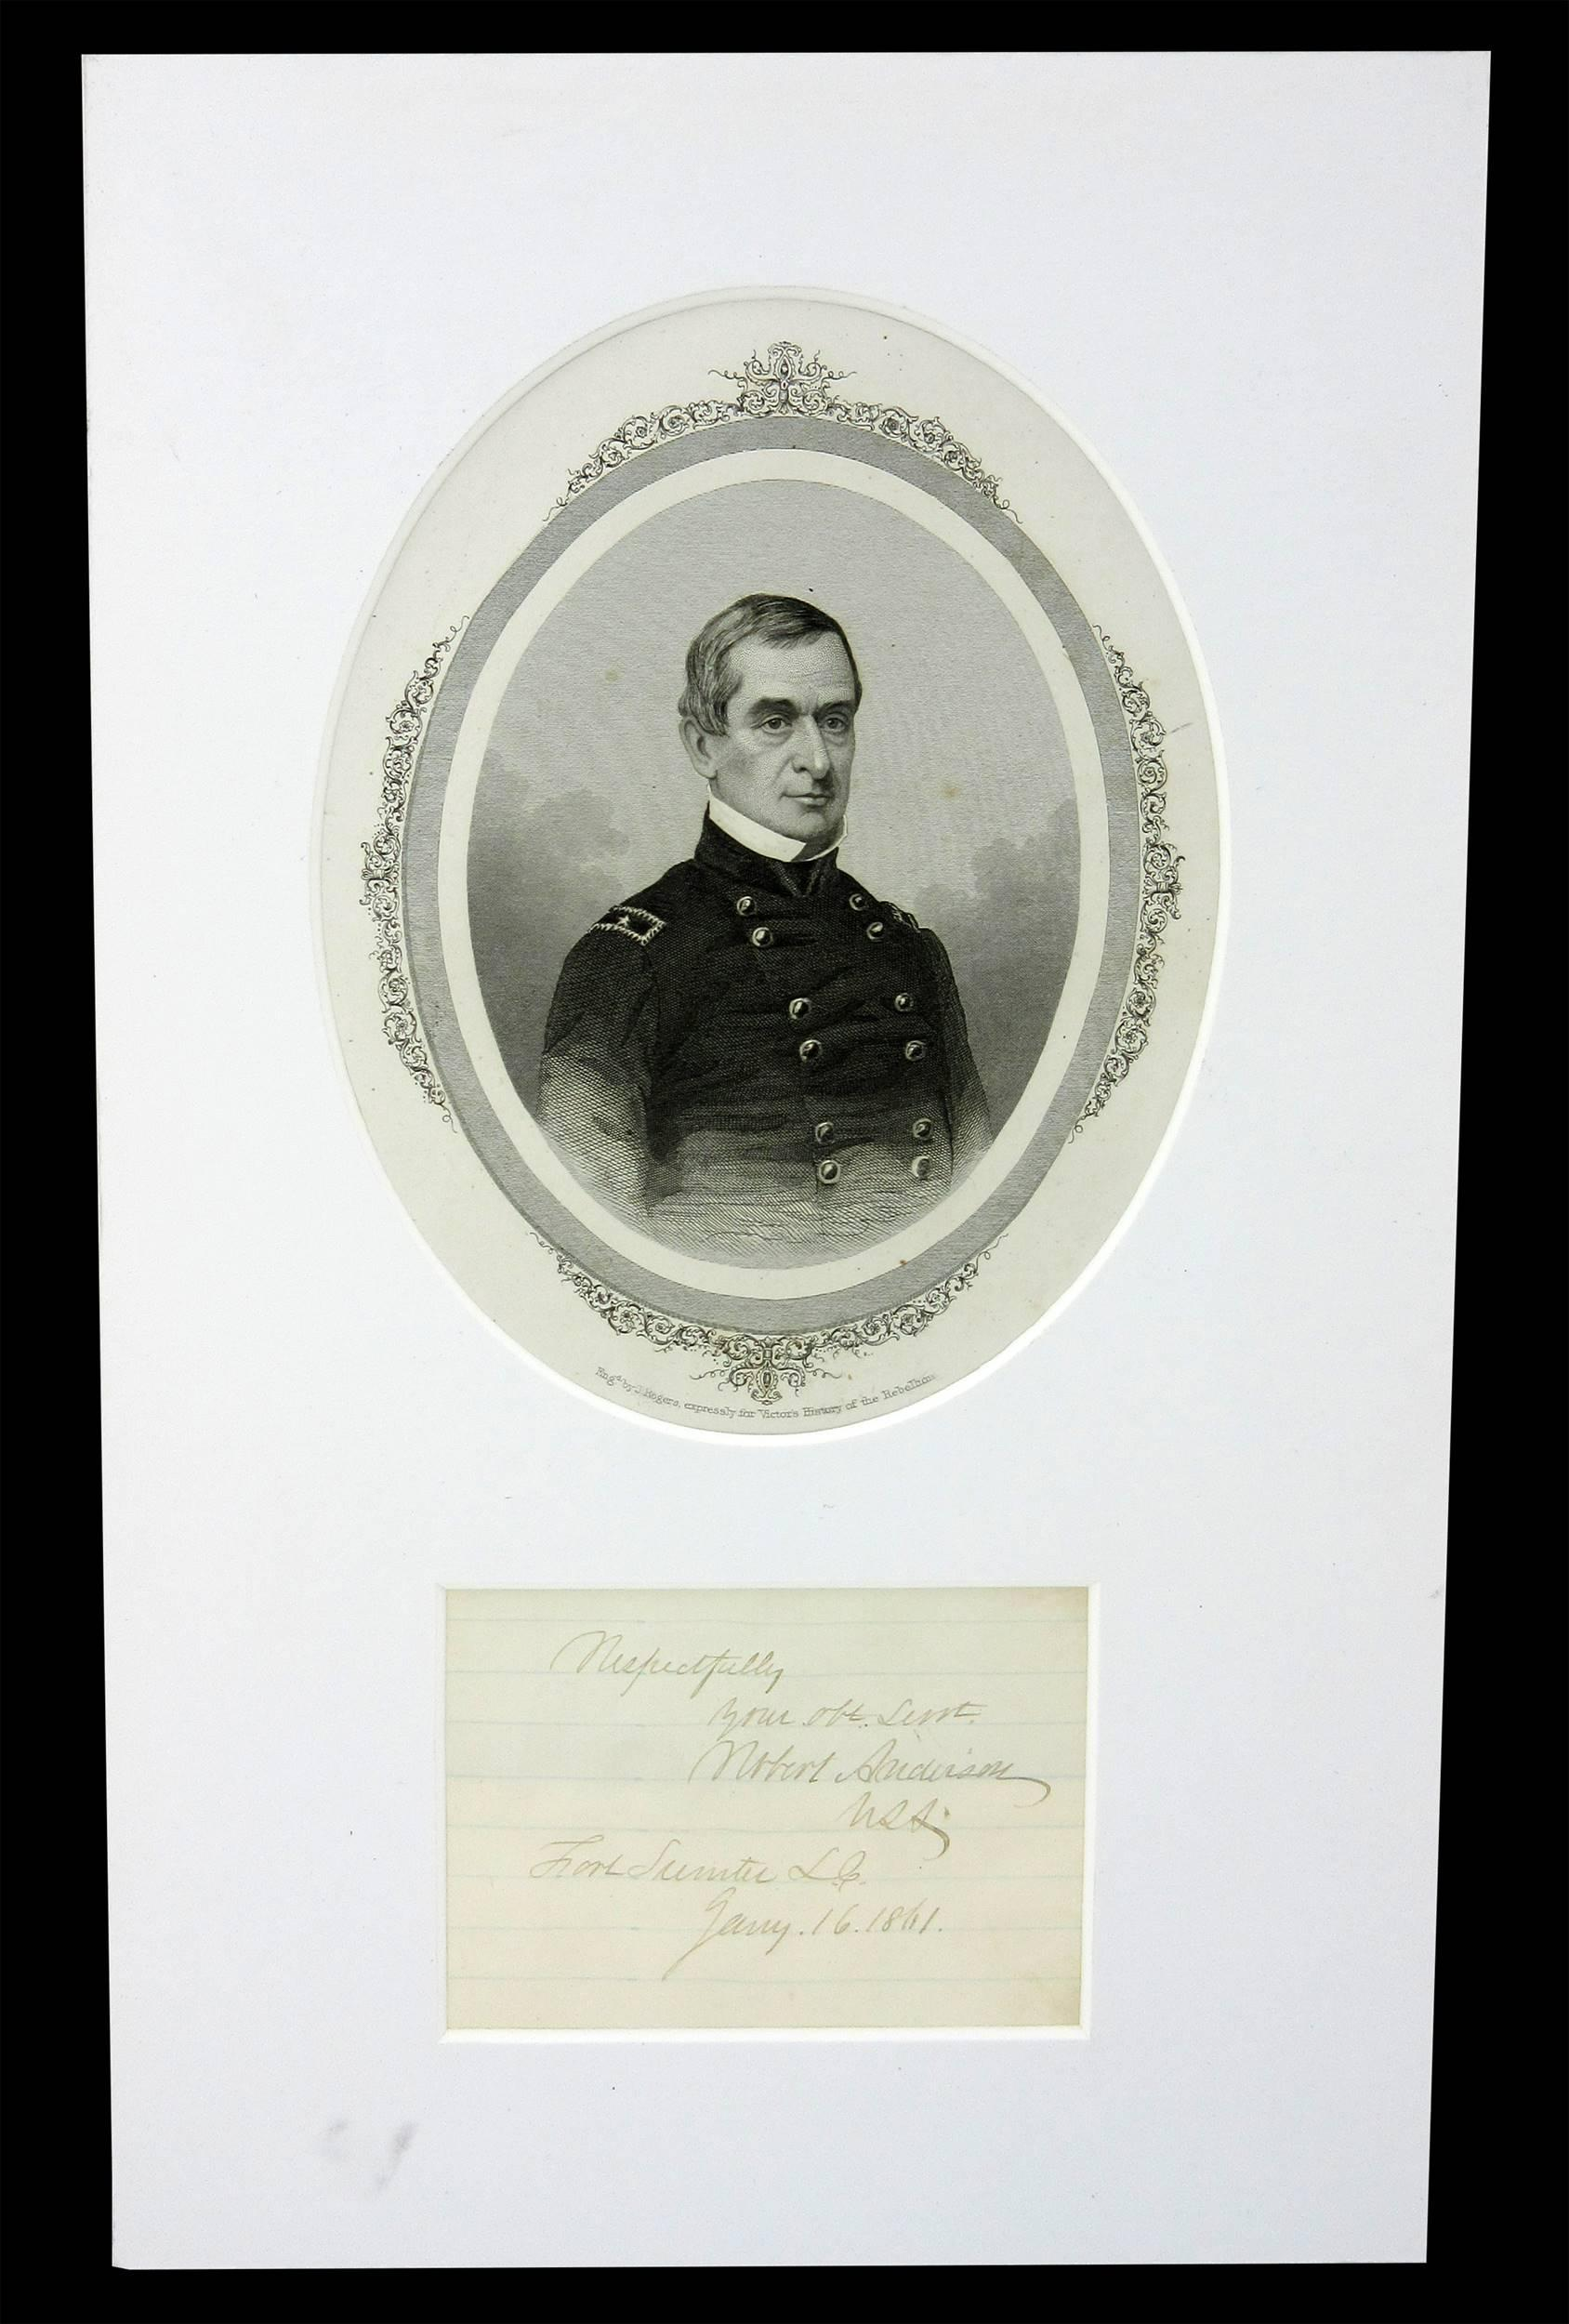 Robert Anderson Autograph from Ft. Sumter Three Months Before the Confederate Attack!